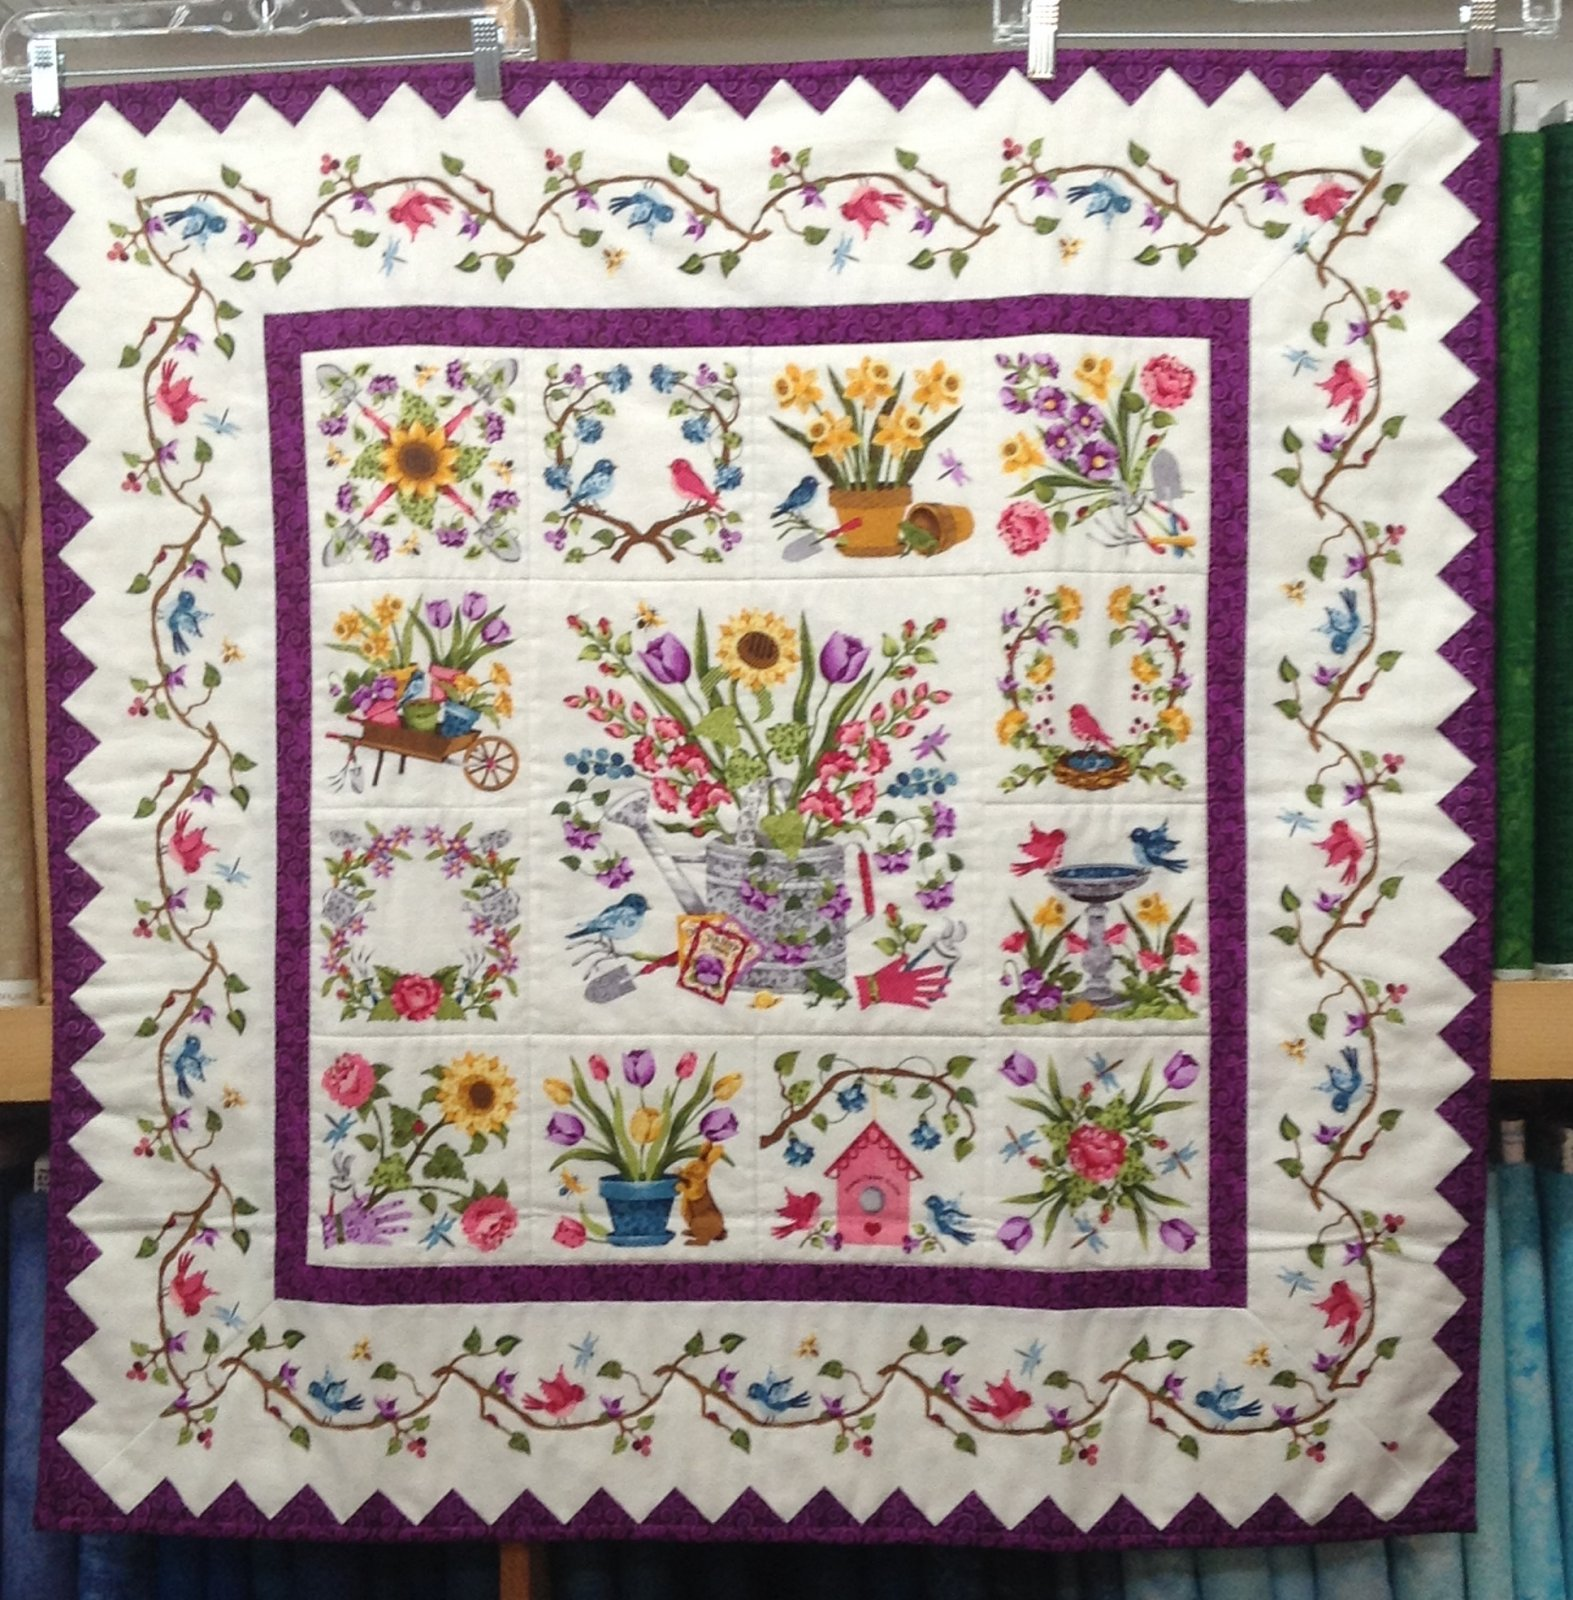 Quilt - Wall Hanging for Sale:  Floral Fantasy featuring Baltimore Spring 36 x 36